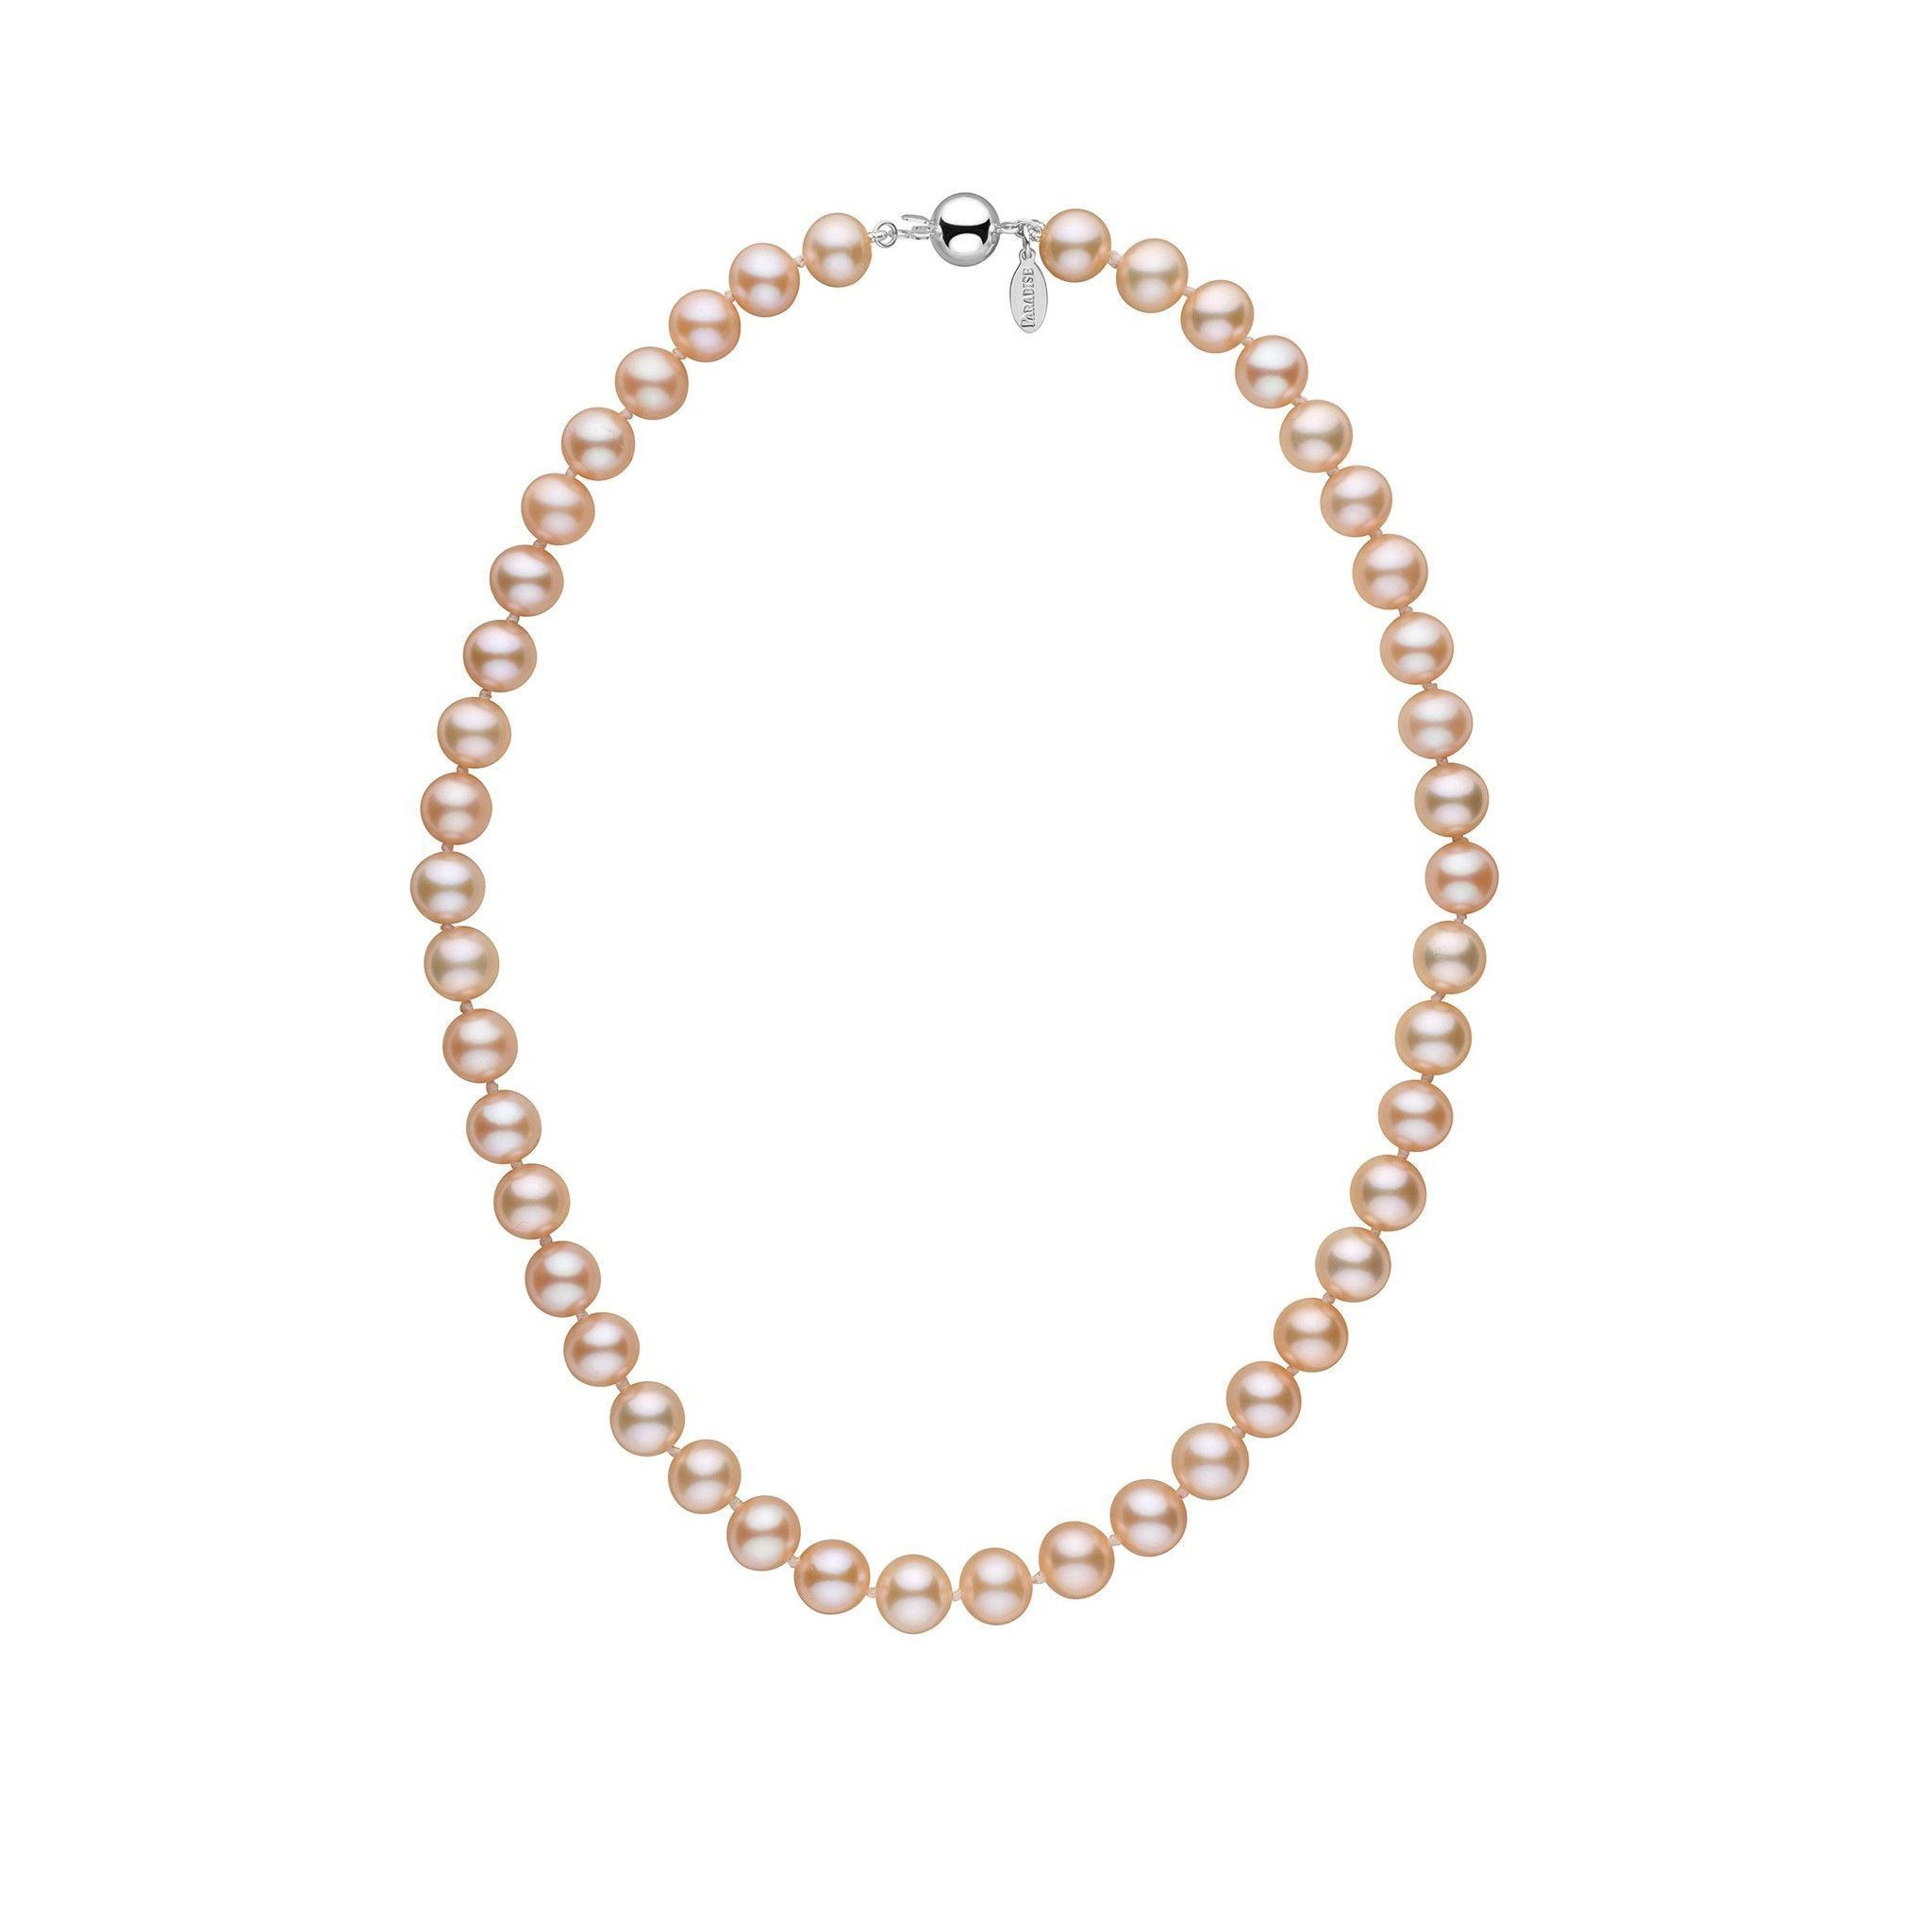 8.5-9.0 mm 16 Inch Pink to Peach Freshadama Freshwater Pearl Necklace